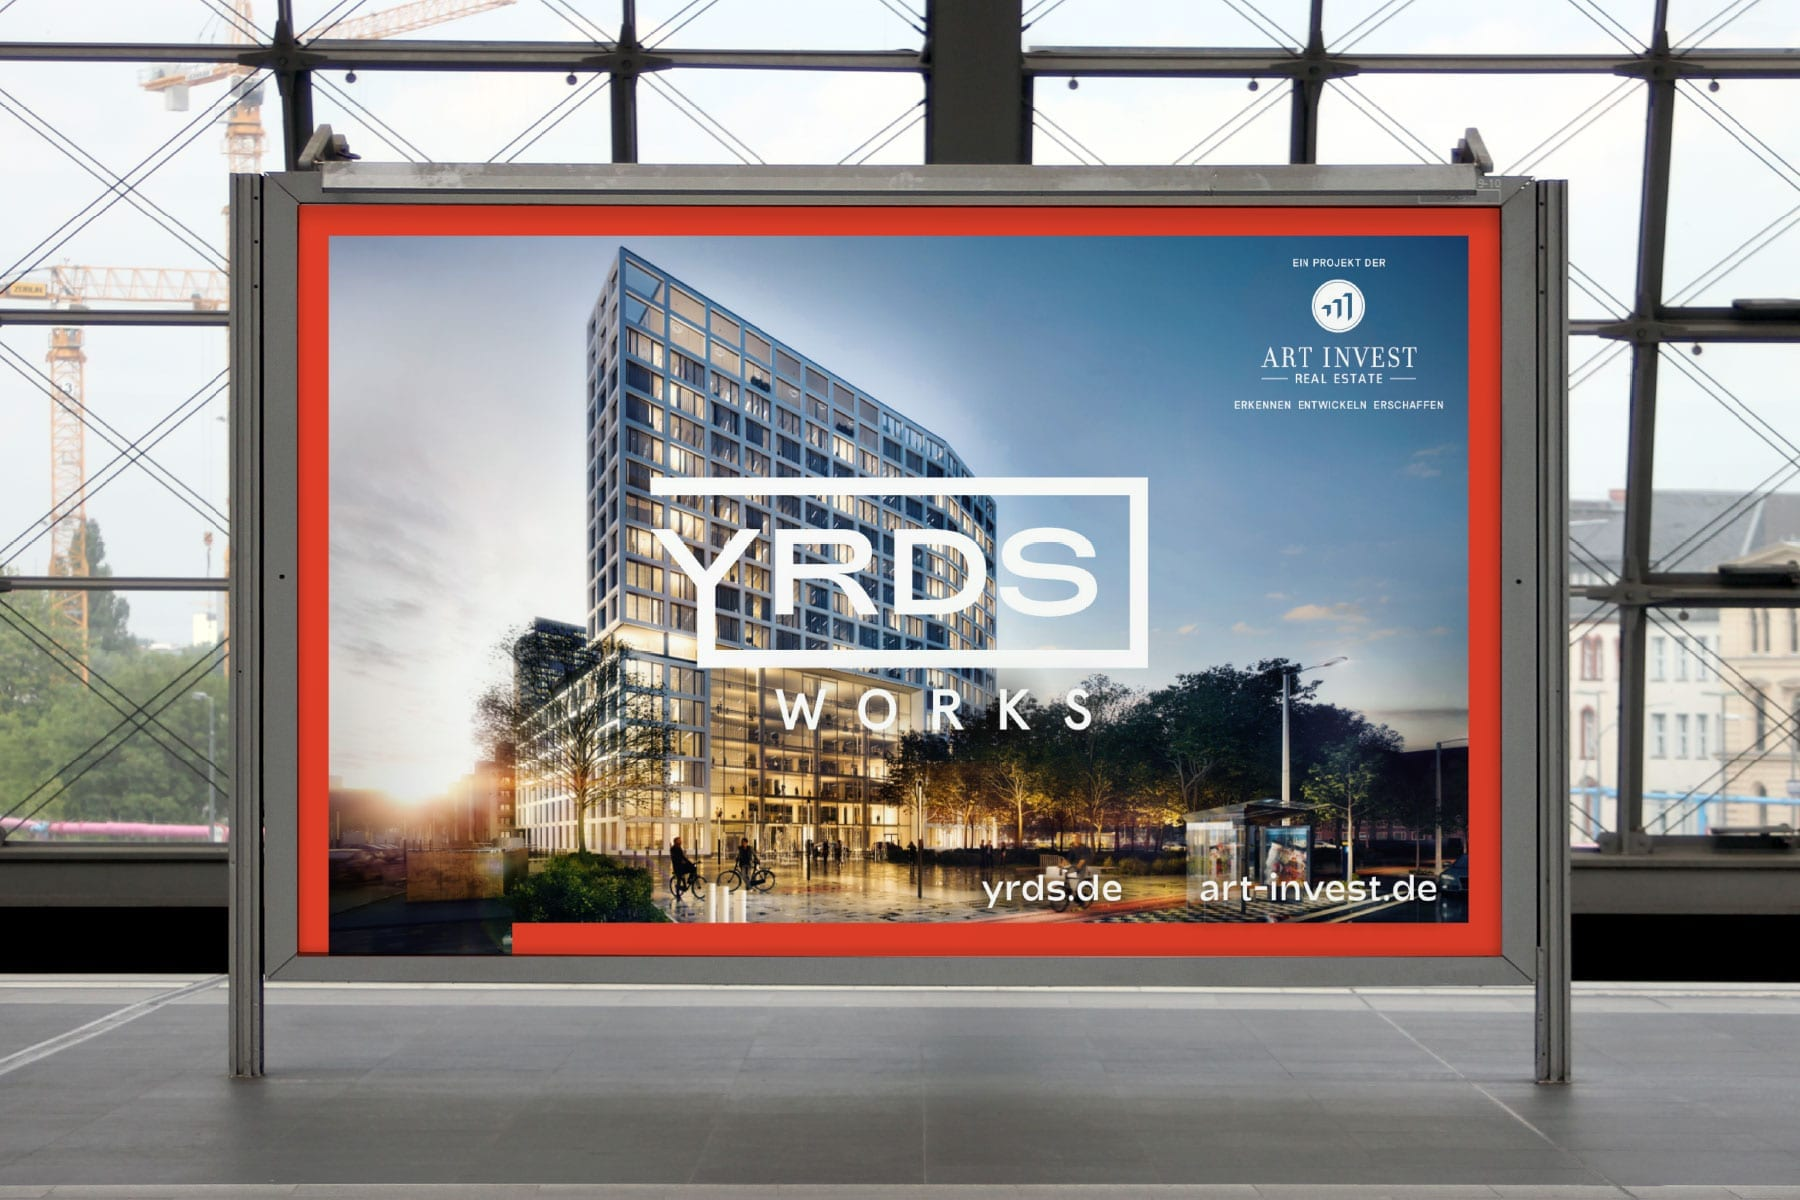 Markenentwicklung-Smart-Office-Building-YRDS-Billboard